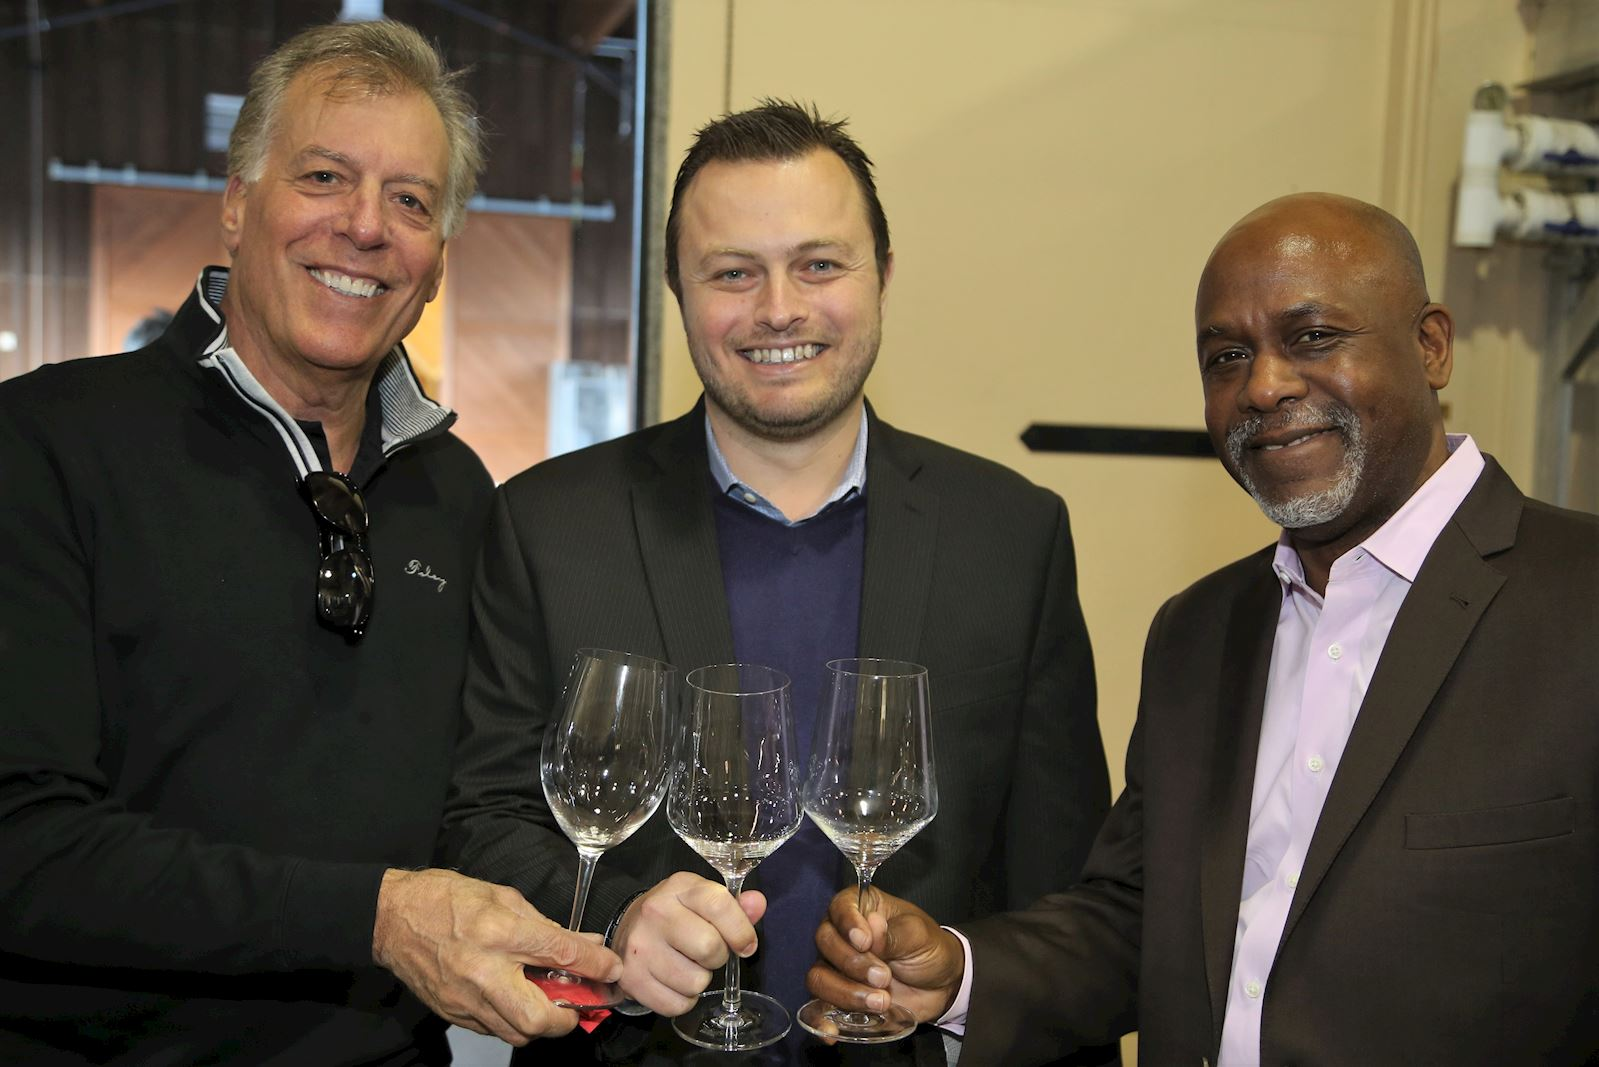 Bruce Cousins, COO of Foley Family Wines, with two Foley Family Sales Reps